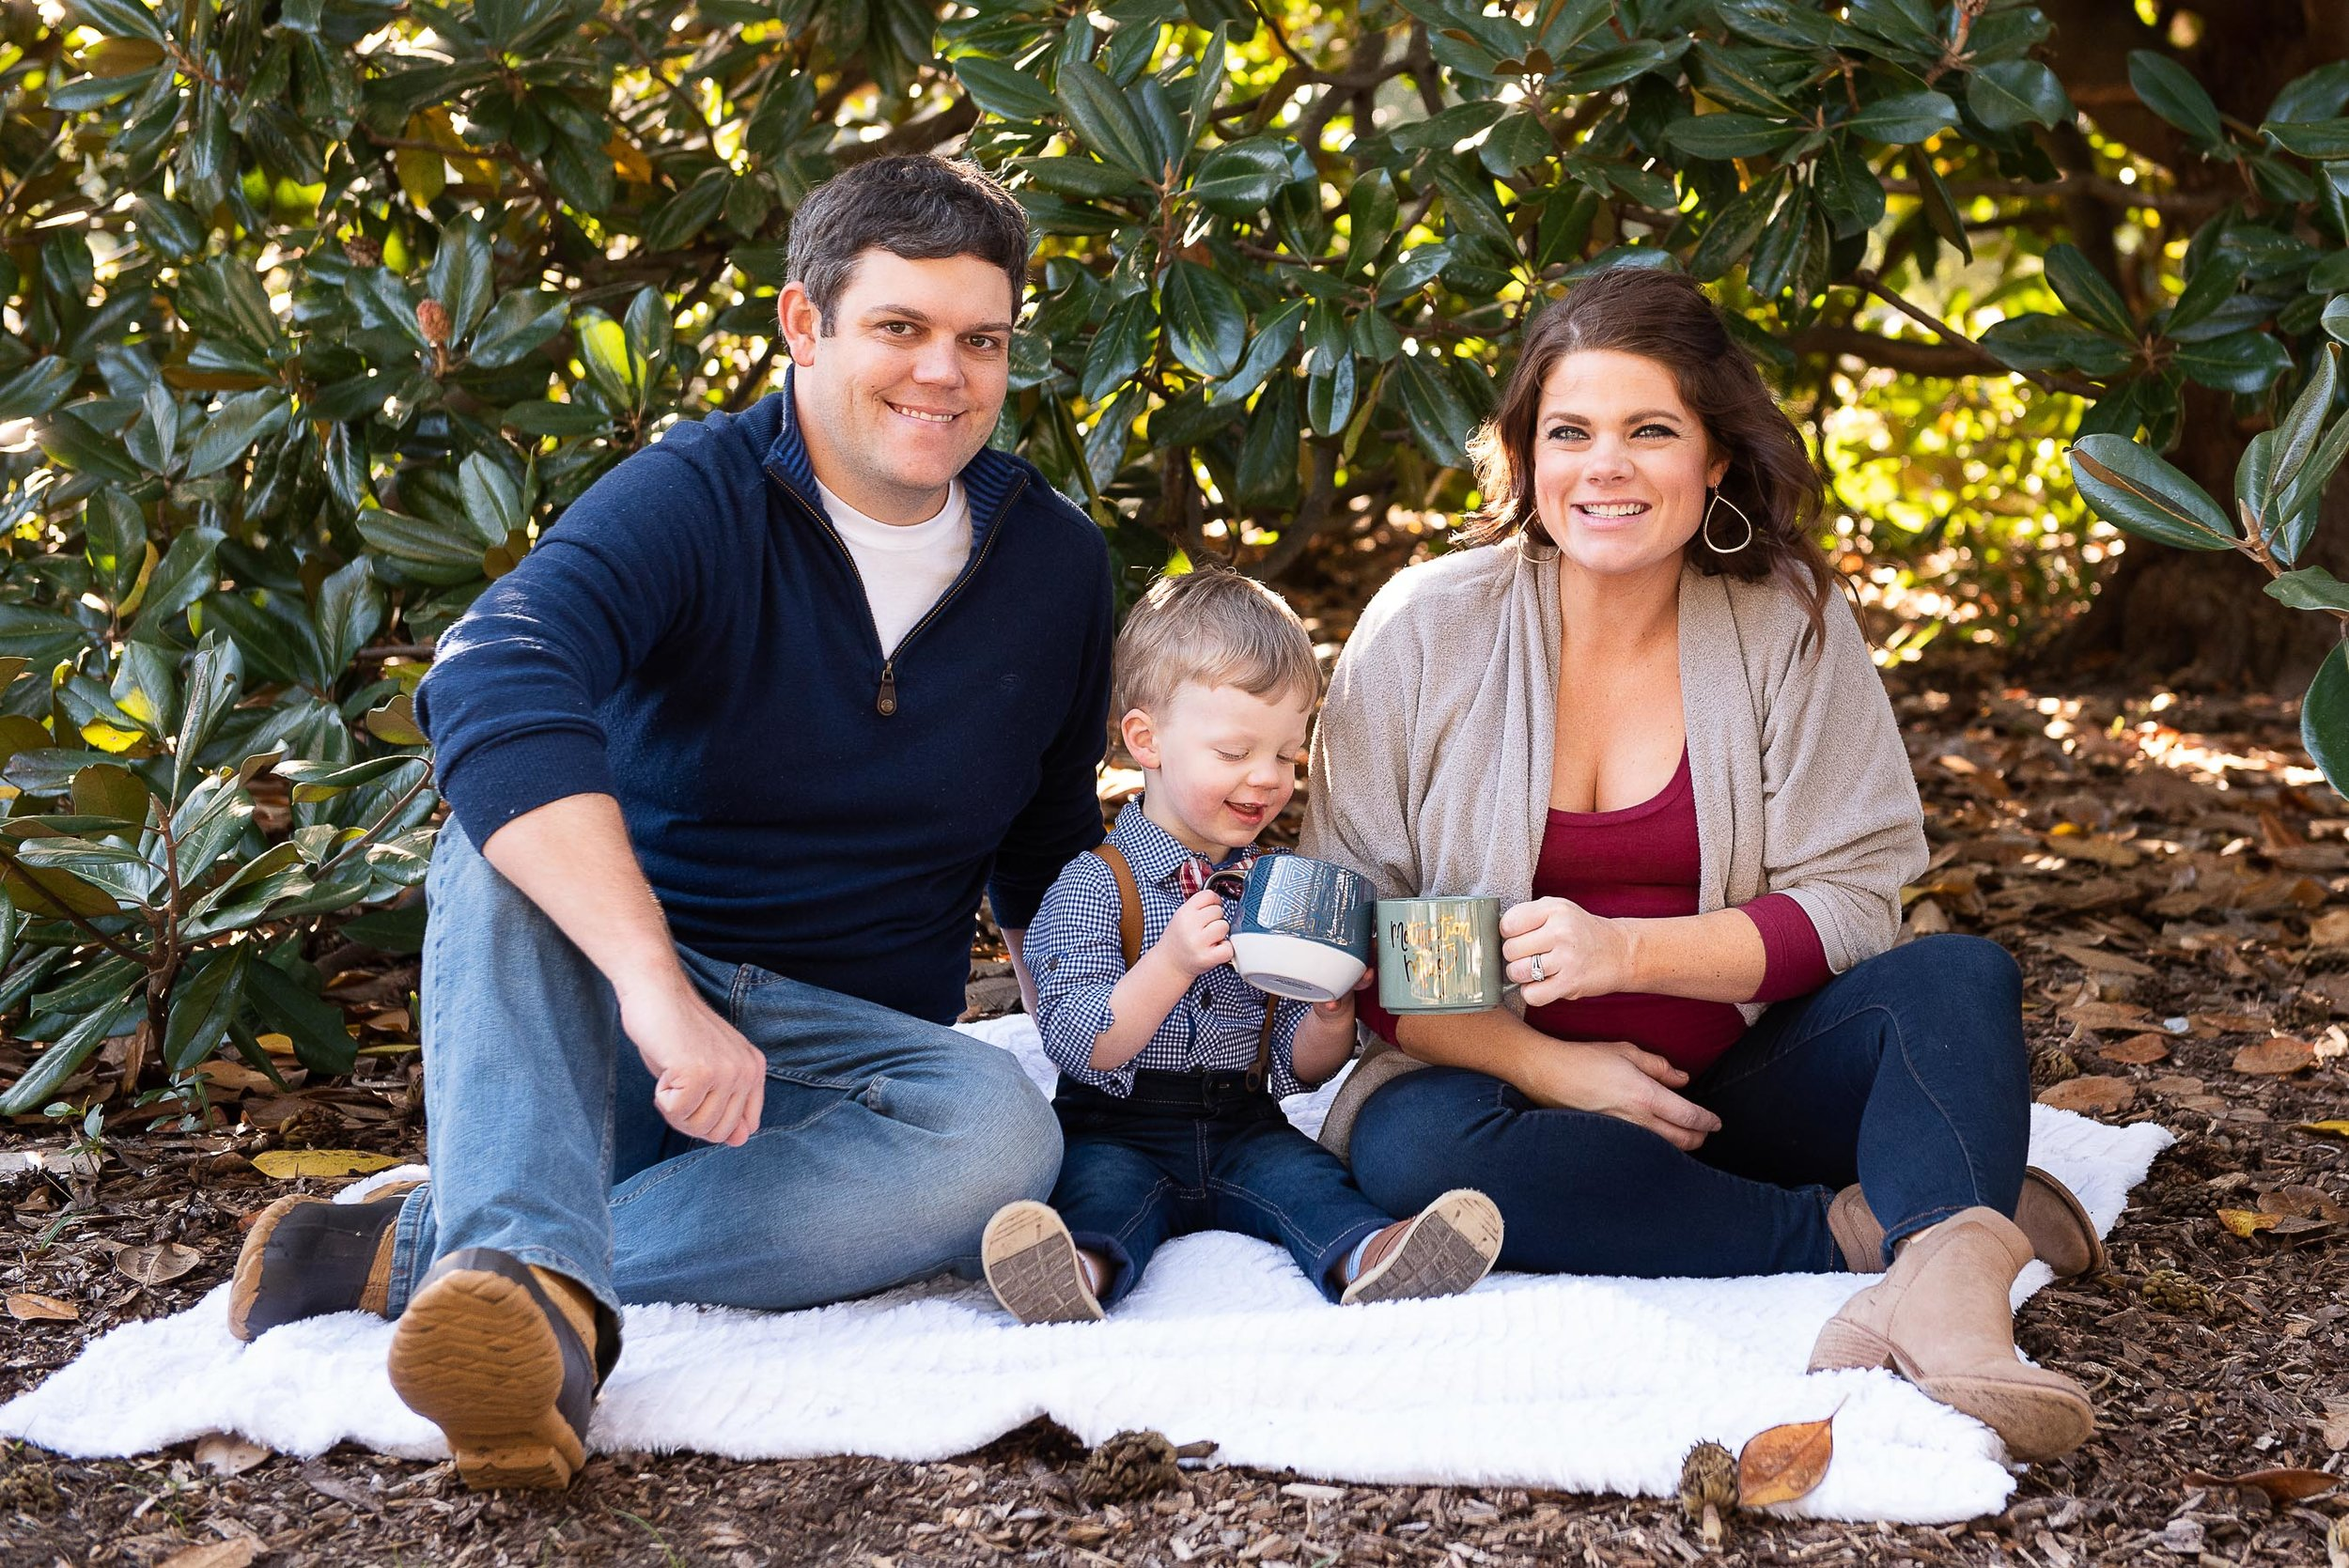 Hampton Park Family Portrait for Christmas Cards